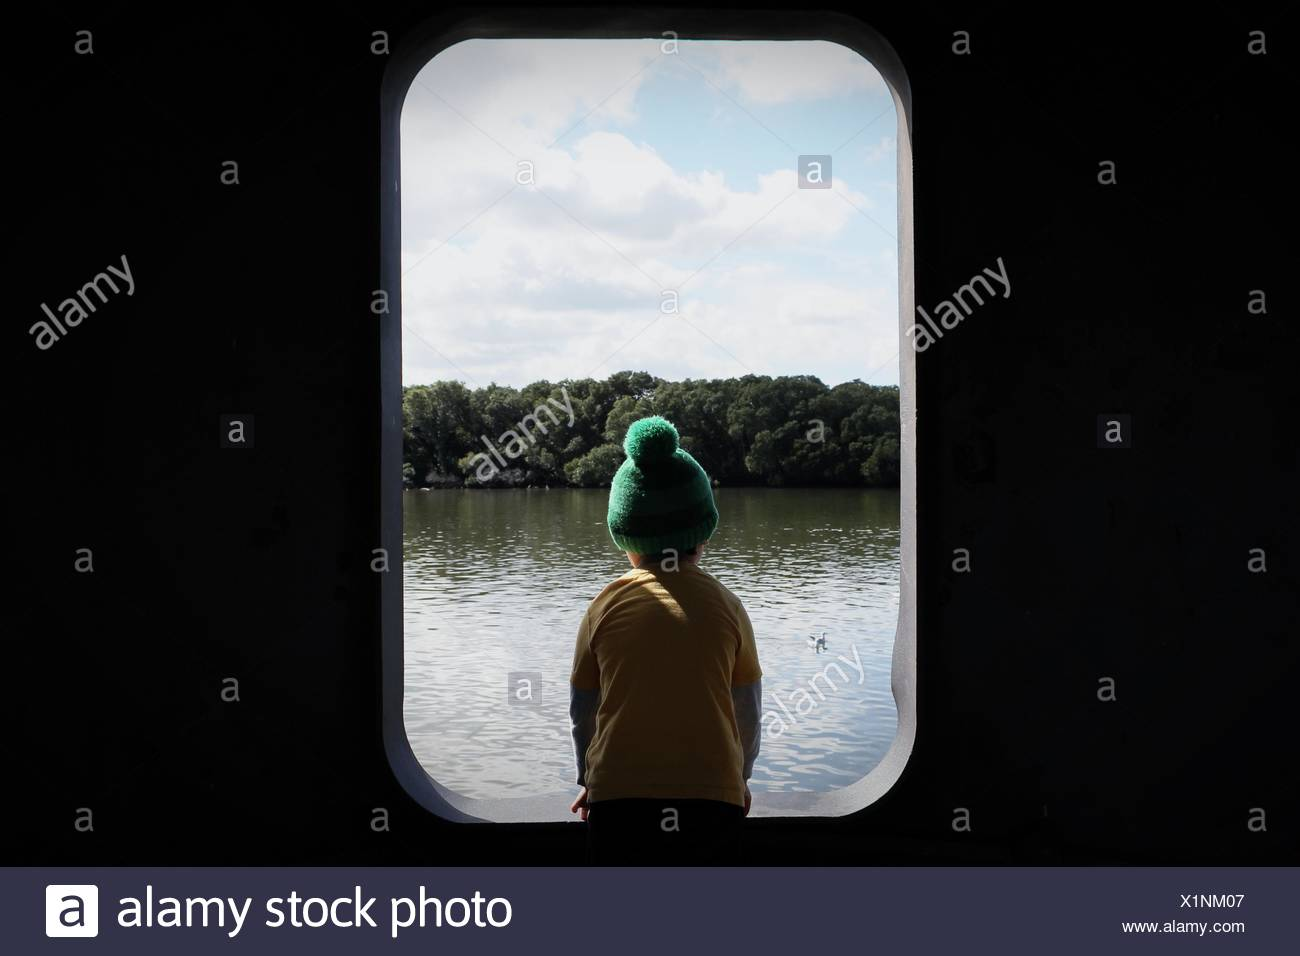 Rear View Of Boy Wearing Knit Hat Sitting In Front Of River - Stock Image